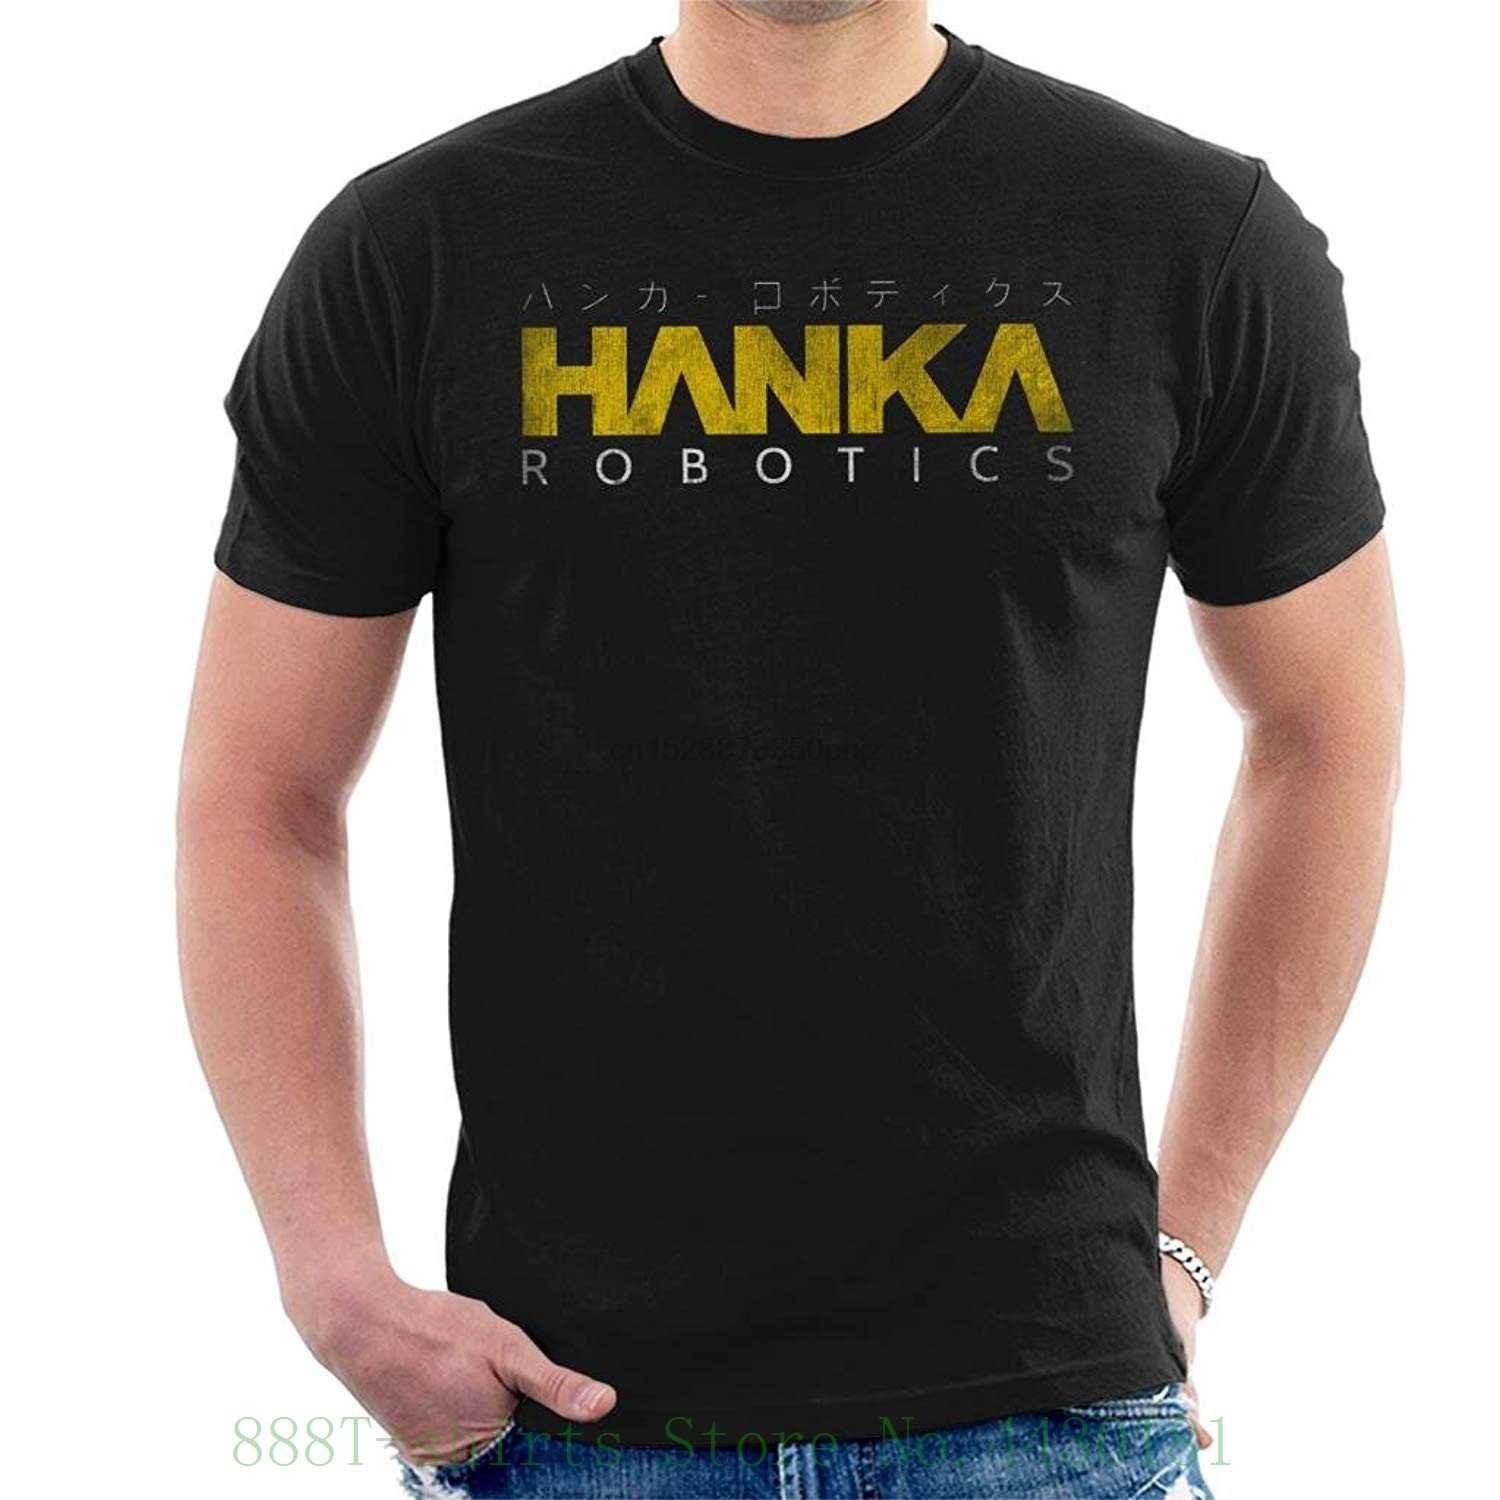 Ghost In The Shell Hanka Robotics Men T Shirt 100% Cotton แขนสั้น O - Neck เสื้อ Tee ชาย Hipster Tops plus ขนาด